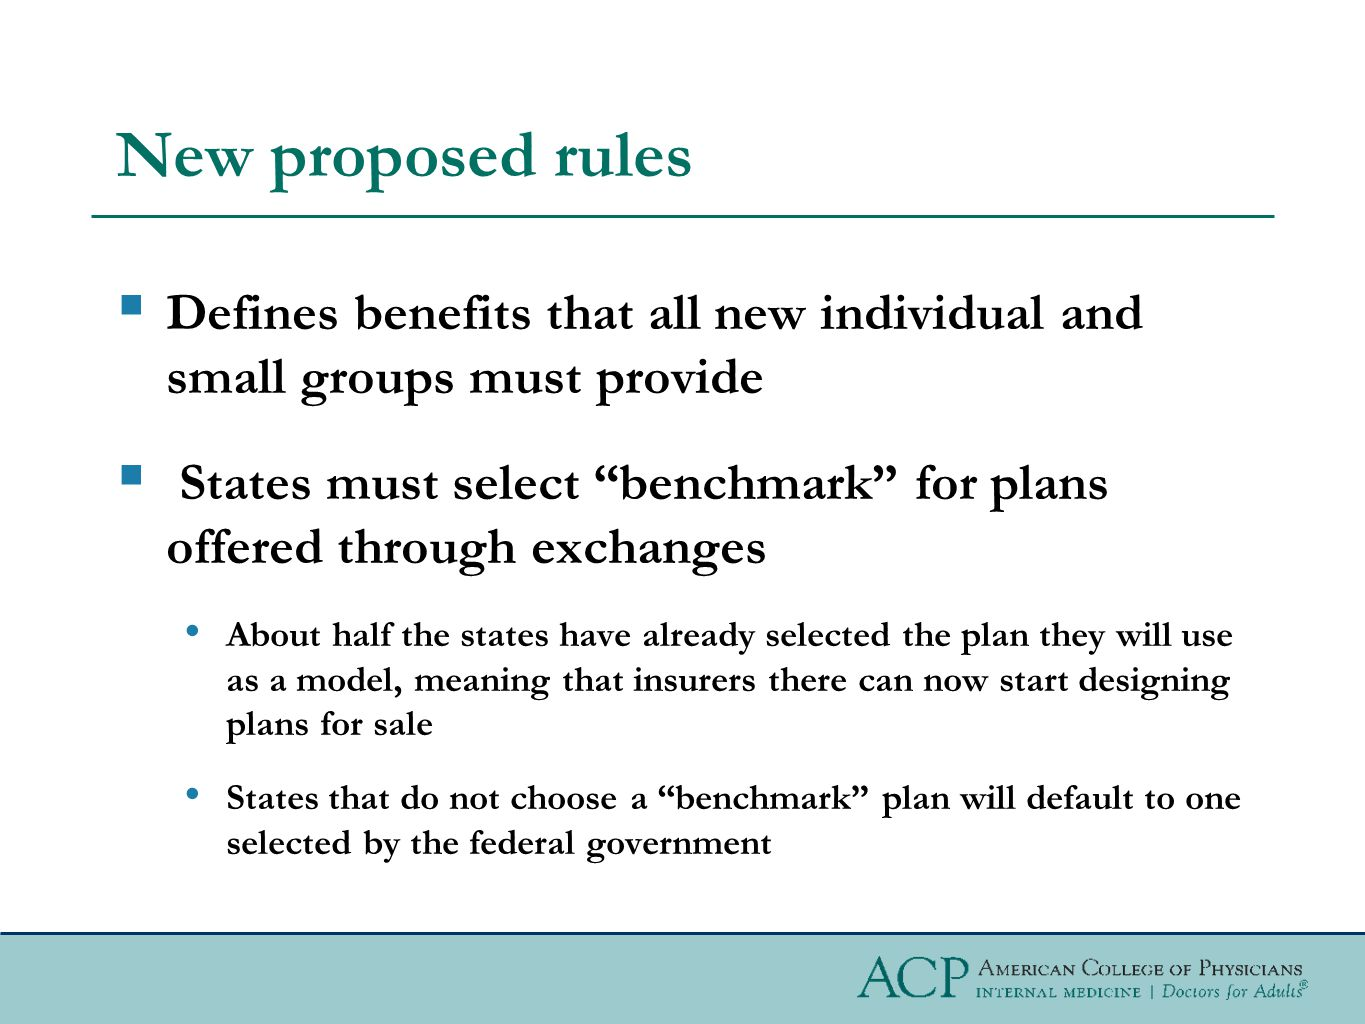 New proposed rules  Defines benefits that all new individual and small groups must provide  States must select benchmark for plans offered through exchanges About half the states have already selected the plan they will use as a model, meaning that insurers there can now start designing plans for sale States that do not choose a benchmark plan will default to one selected by the federal government